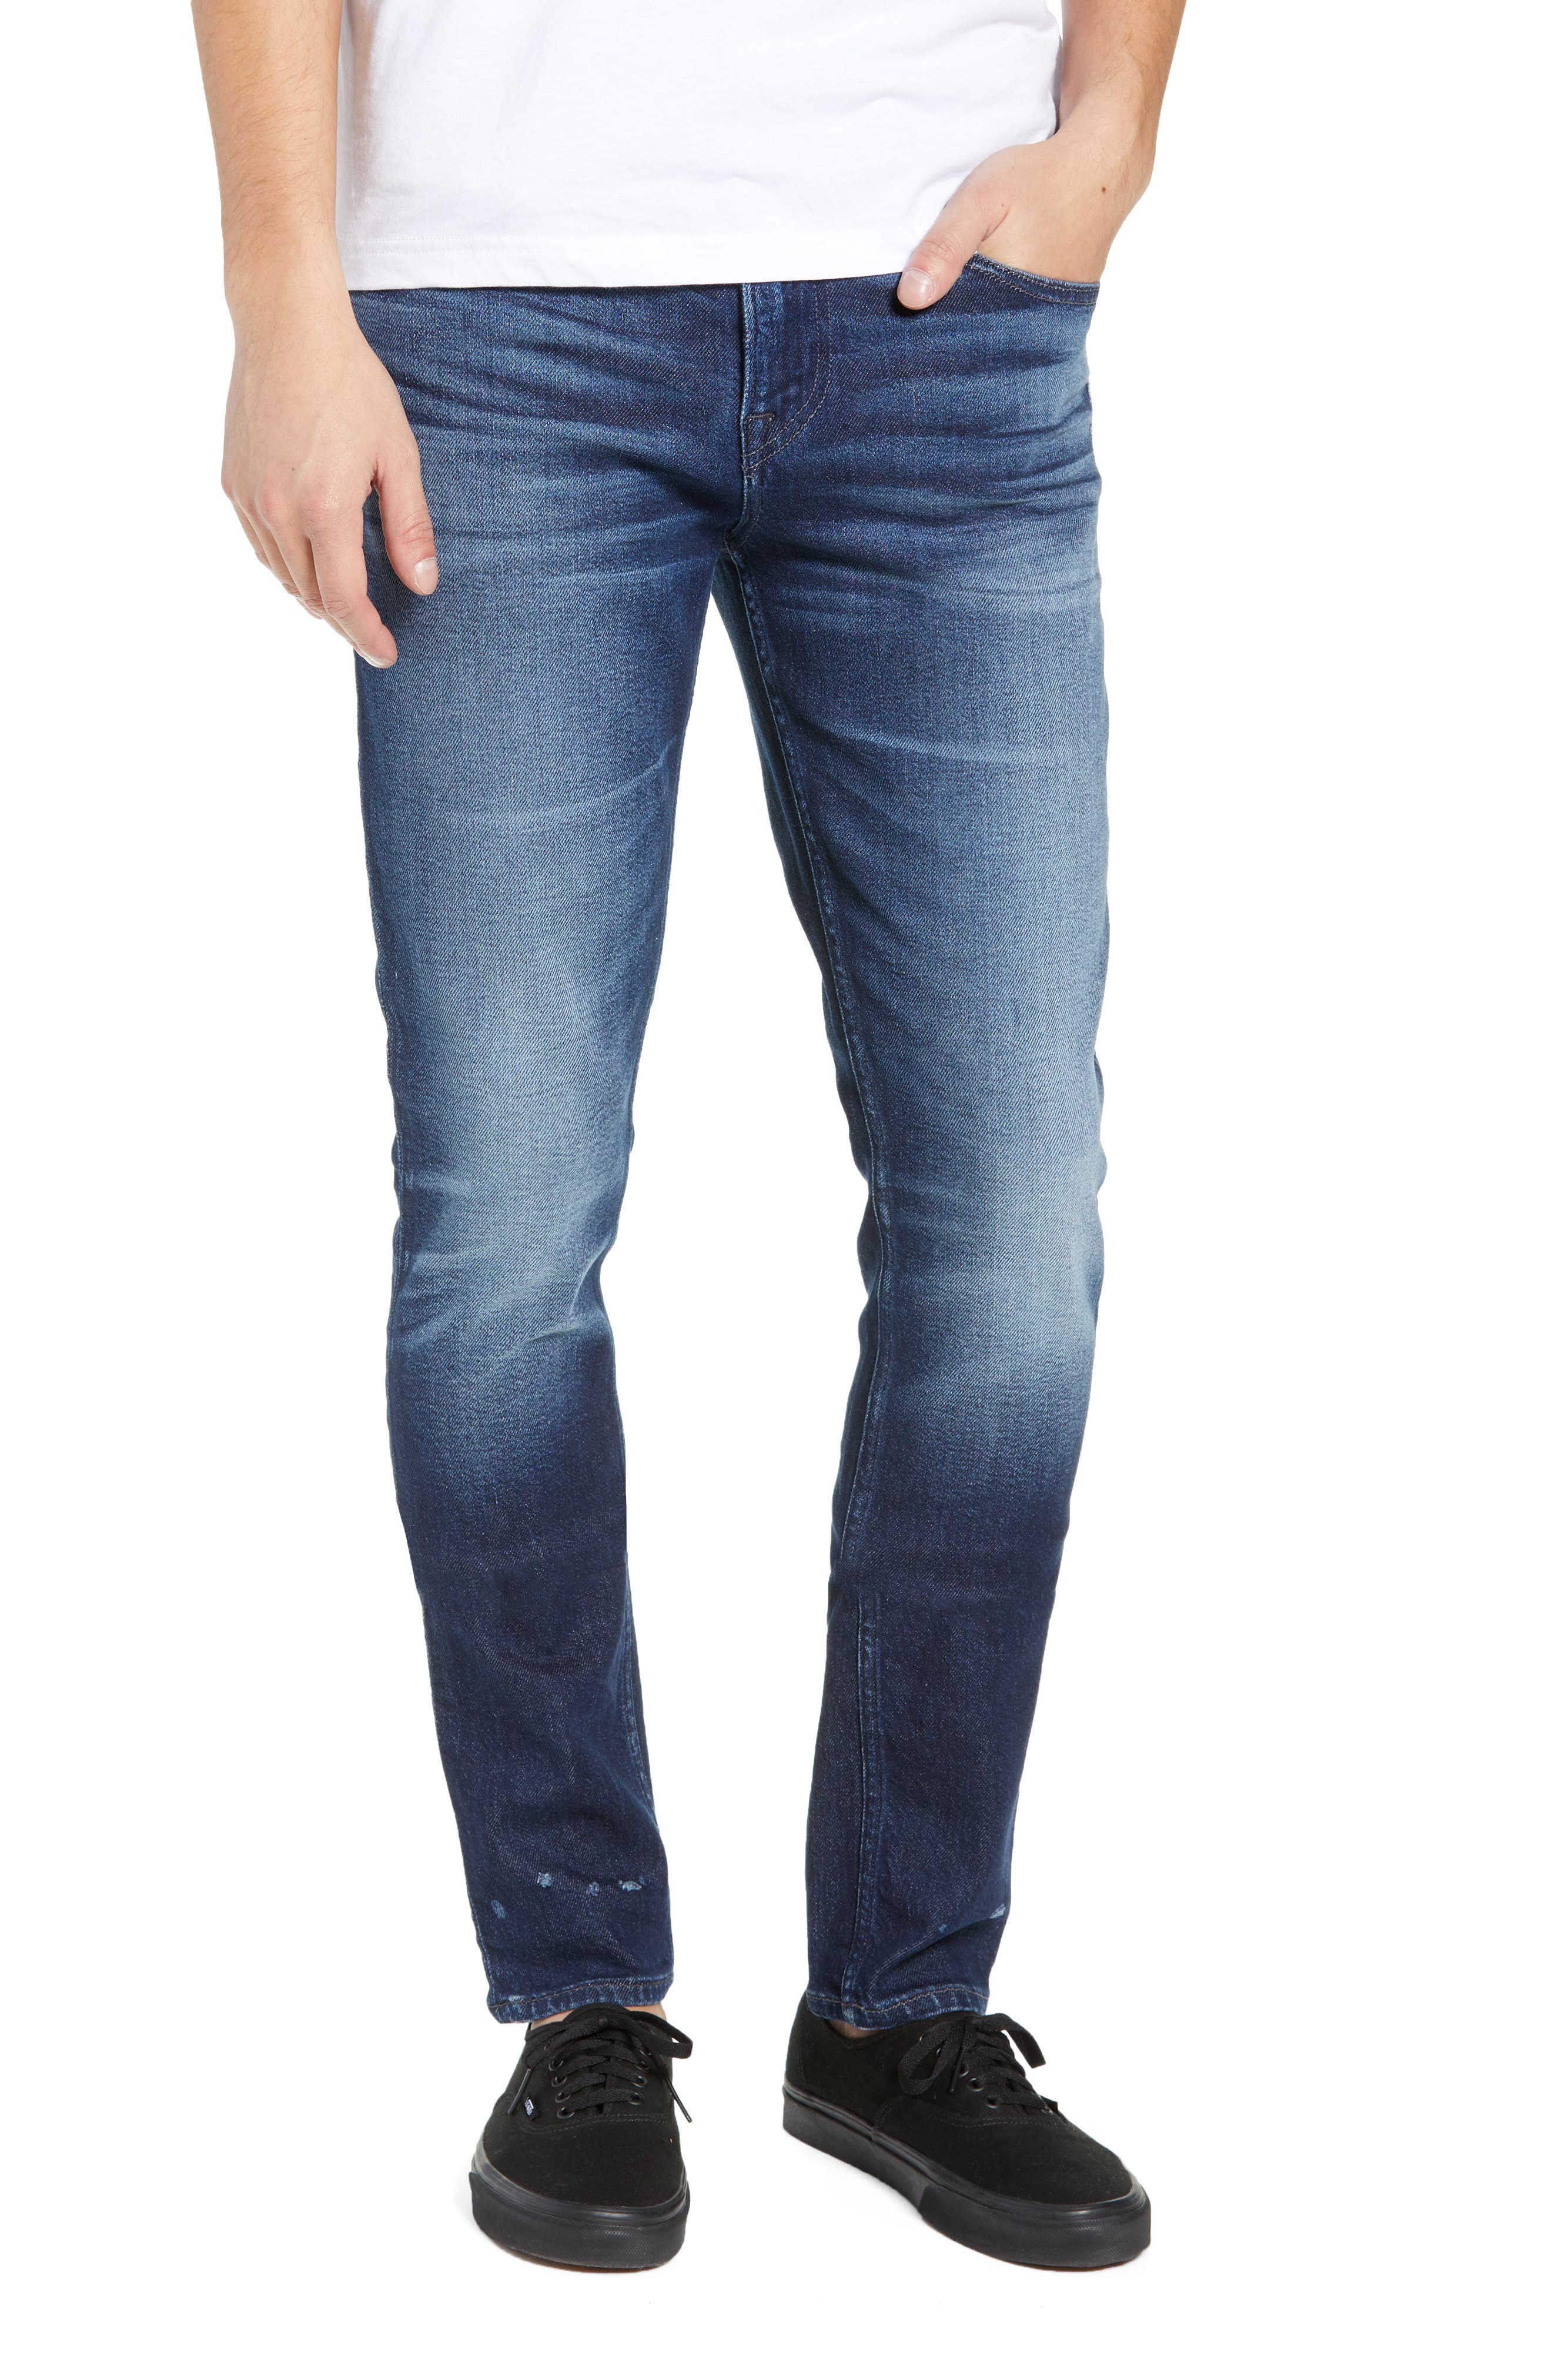 Axl Skinny Fit Jeans,                         Main,                         color, BENNETT